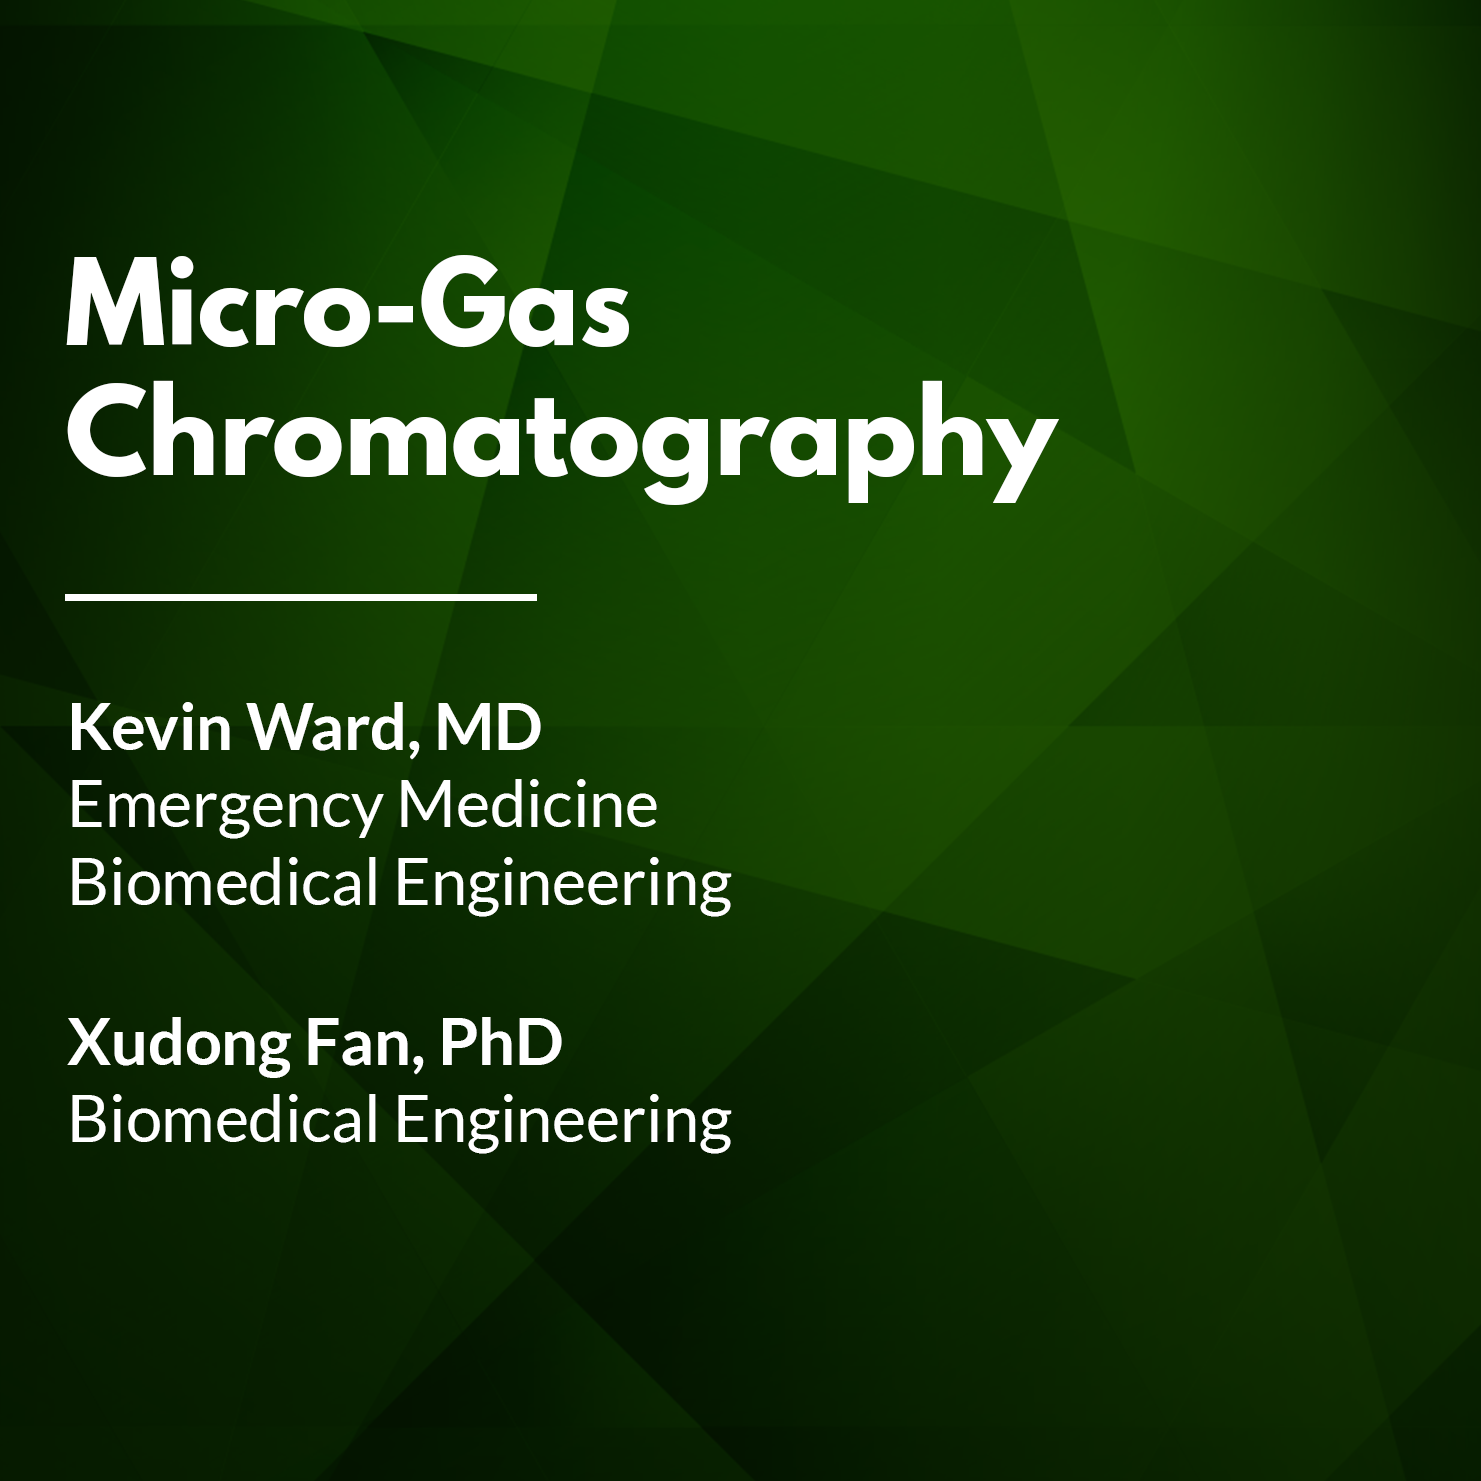 Research Thumbnail Template - Micro-Gas Chromatography - Ward.png